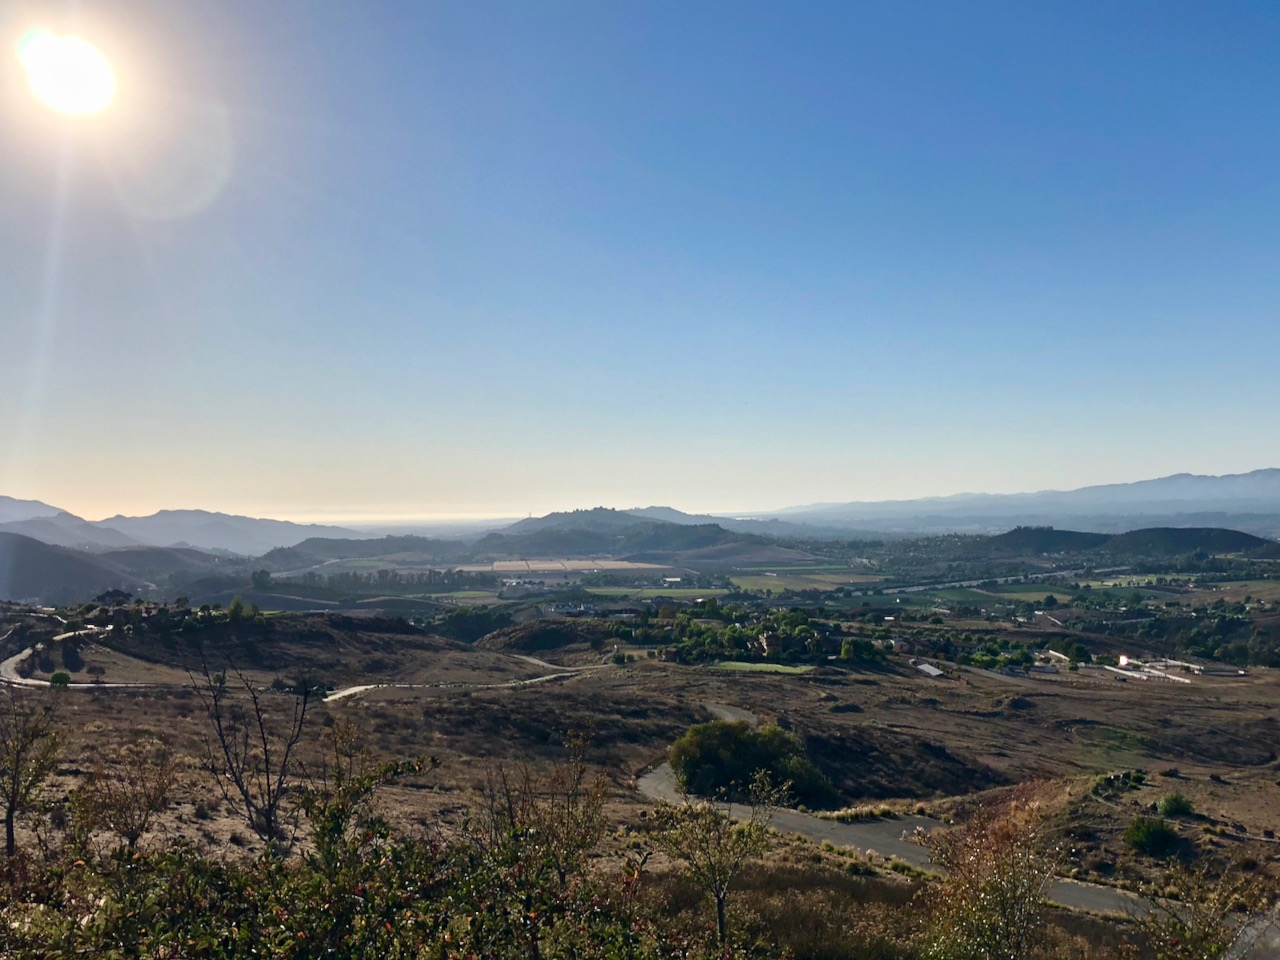 Where to Stay and What to Do in Conejo Valley, California